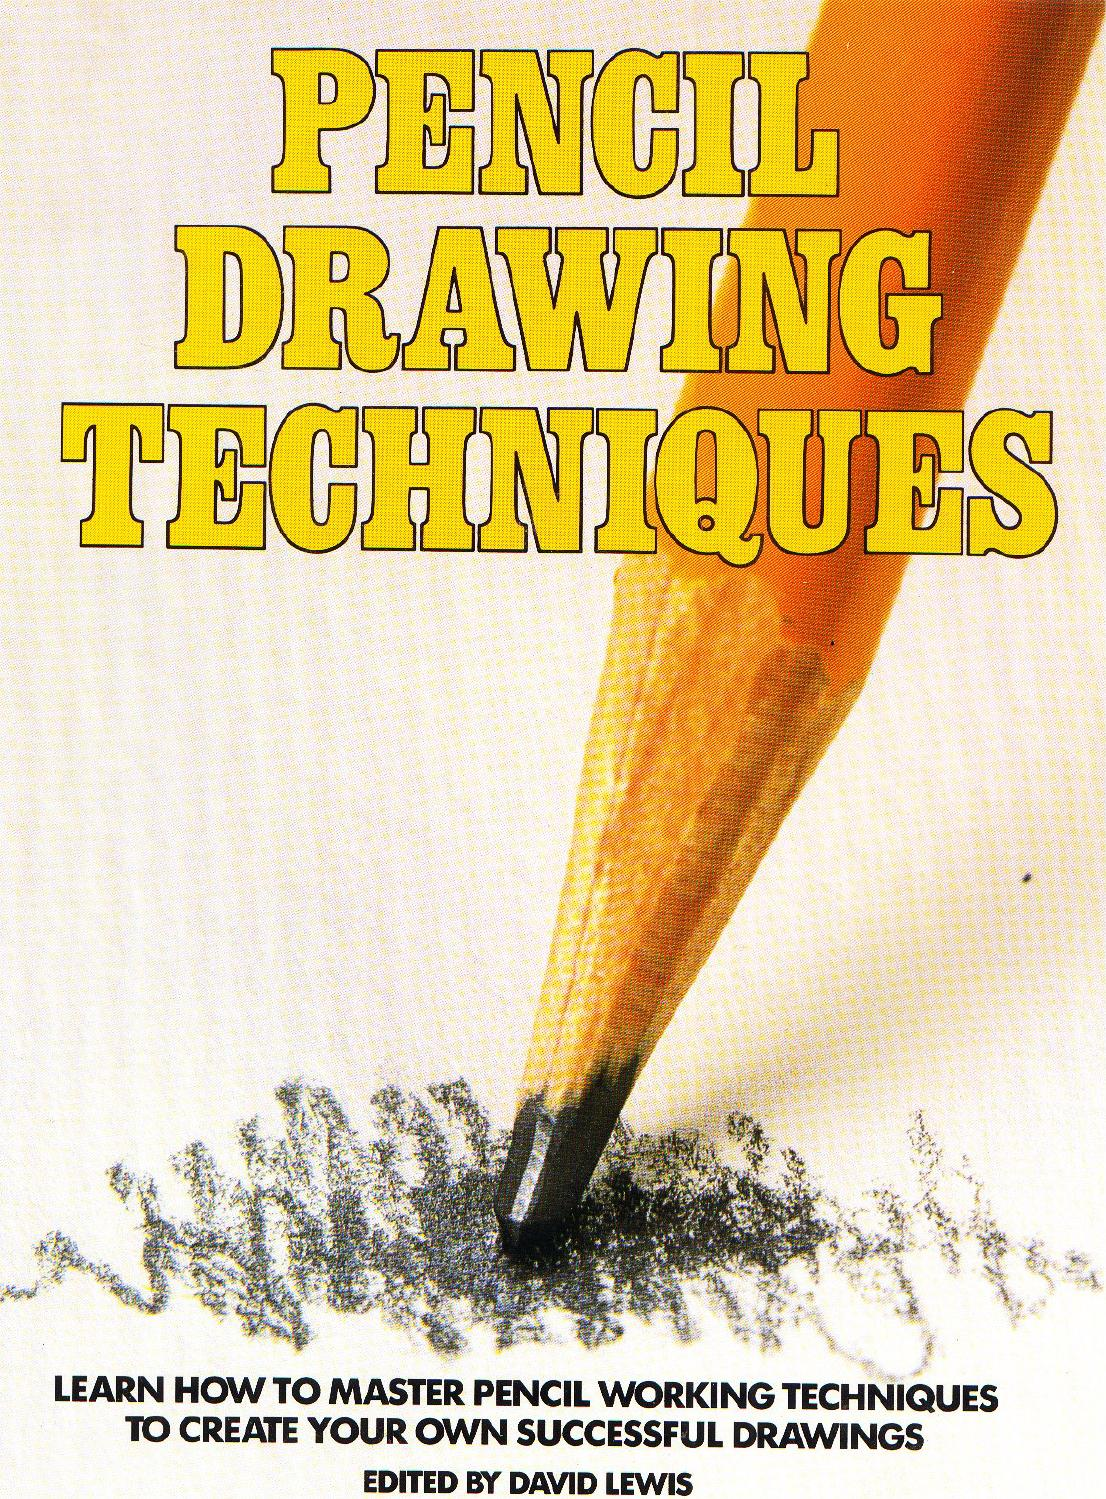 David lewis pencil drawing techniques